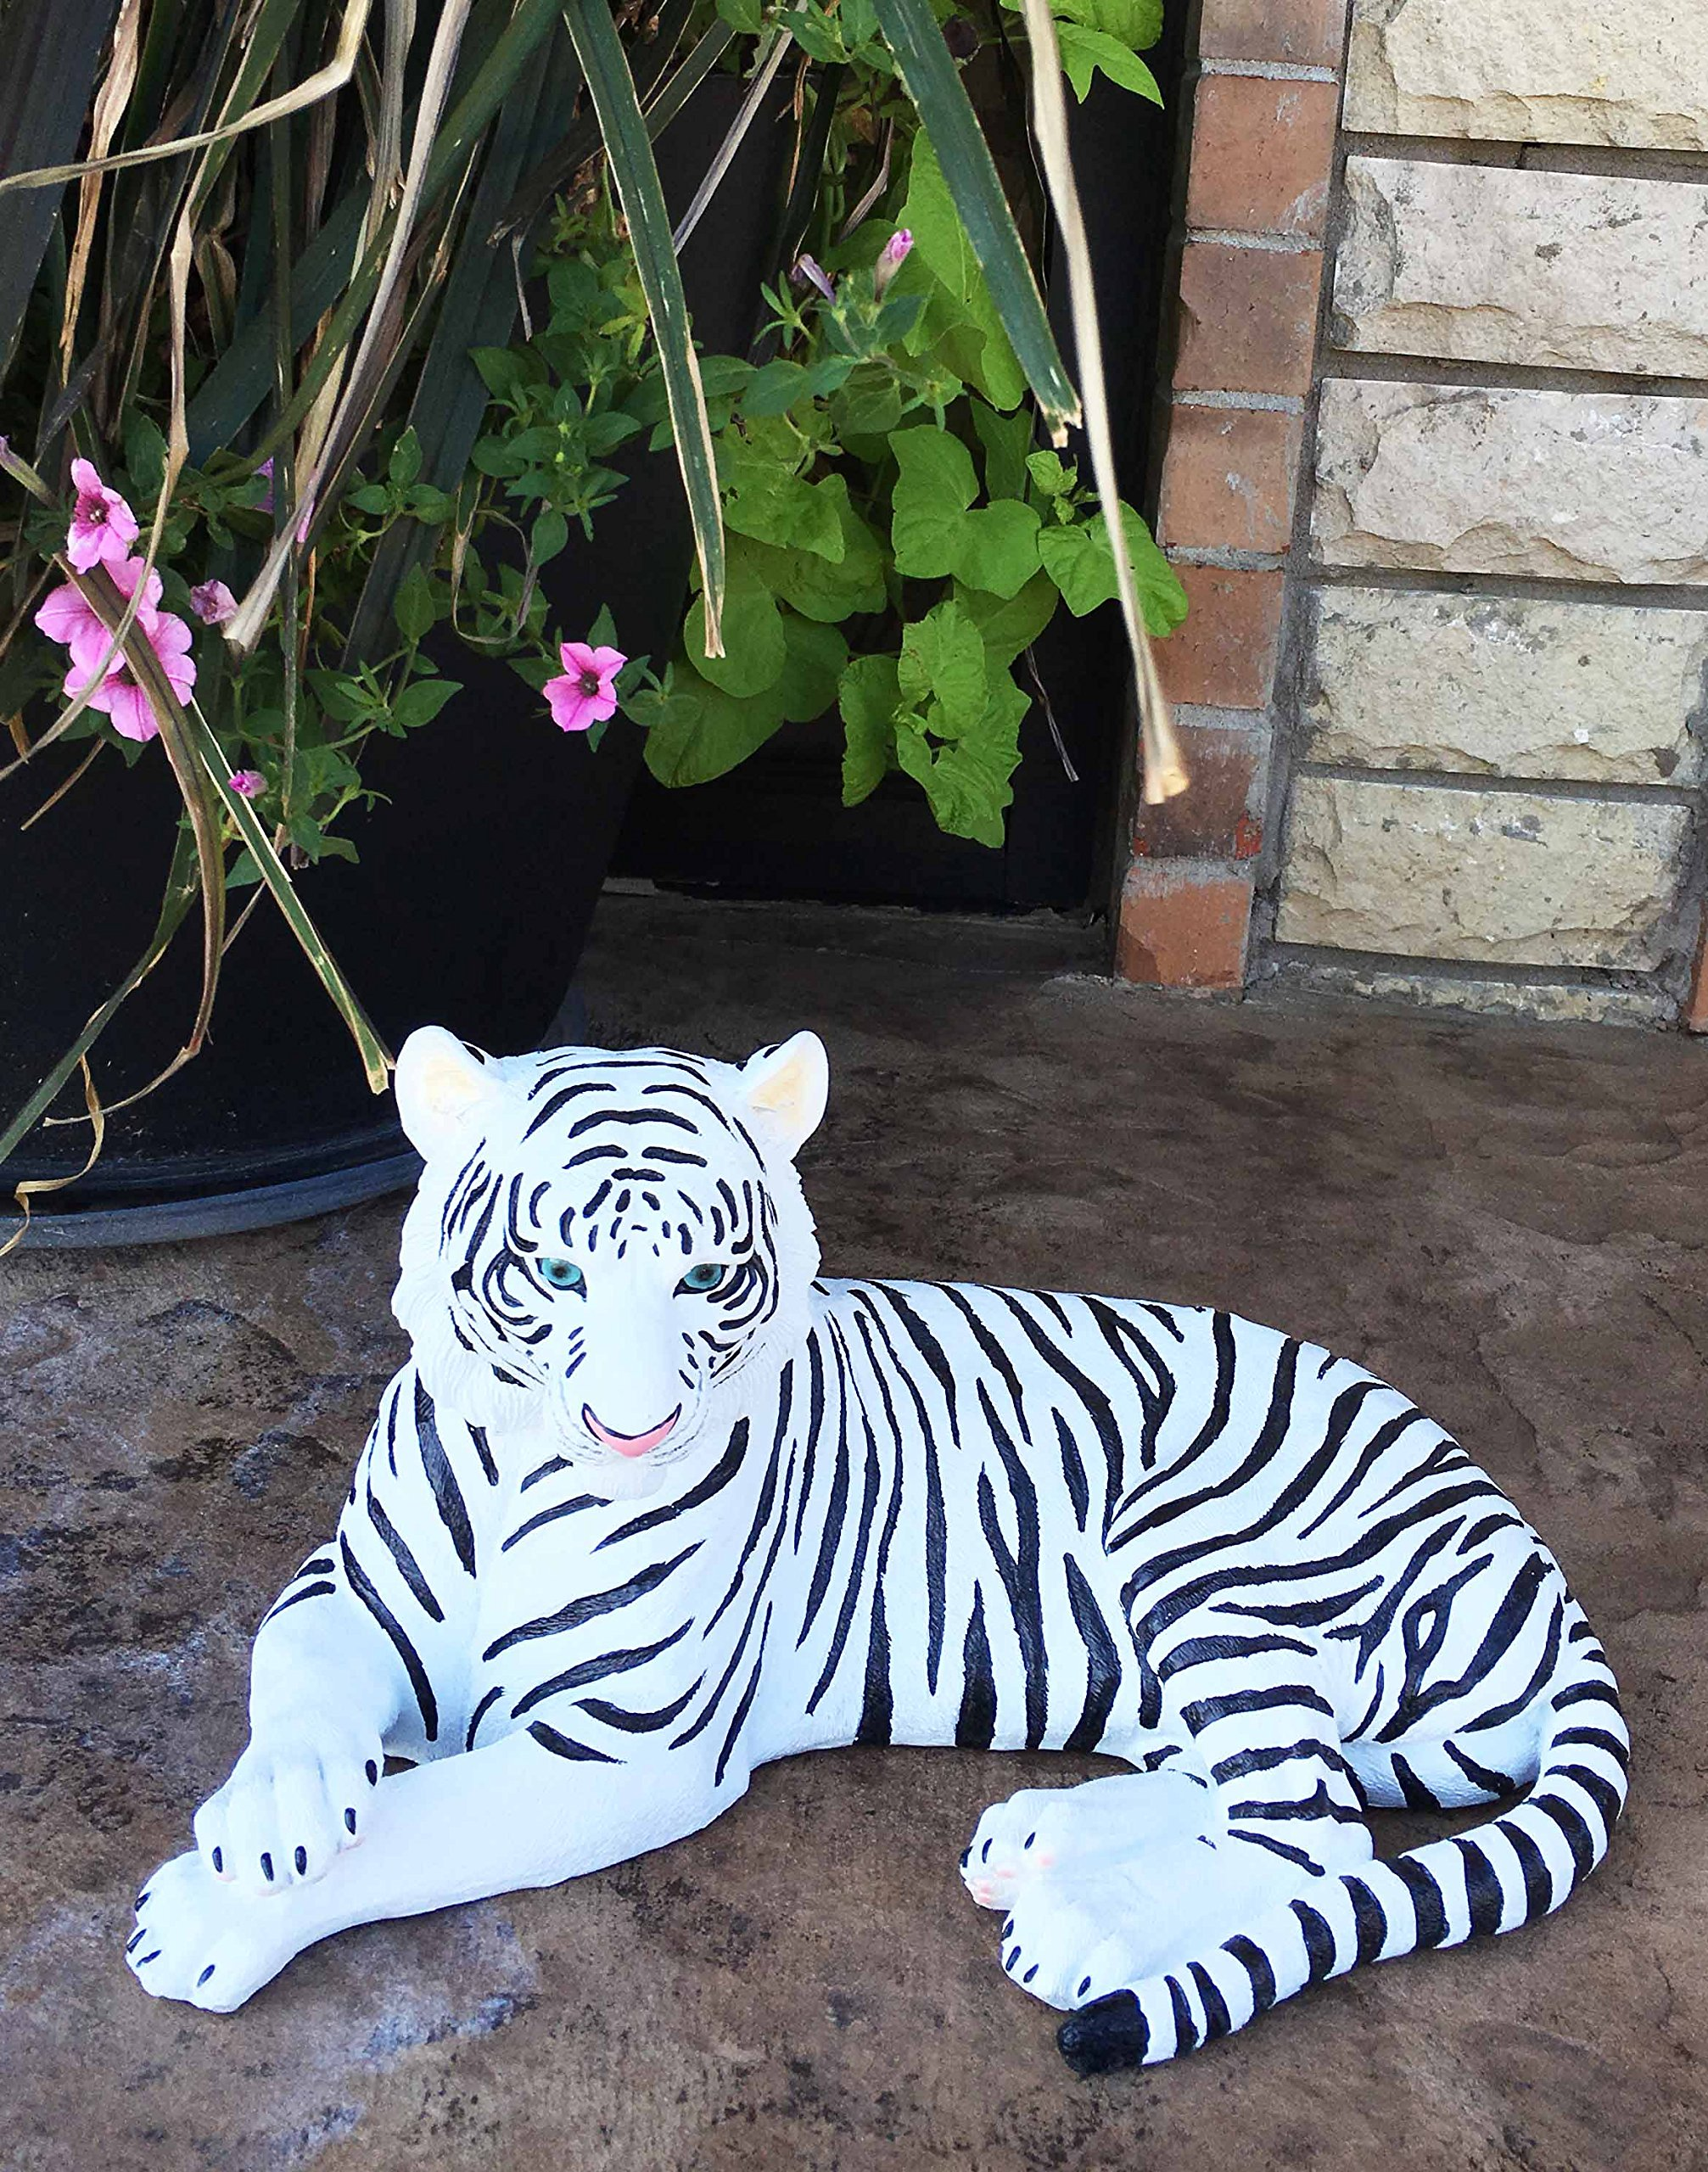 Large Exotic White Siberian Ghost Tiger At Rest 15.5'' Long Statue Jungle Apex Predator Home Garden Outdoor Patio Decor Figurine